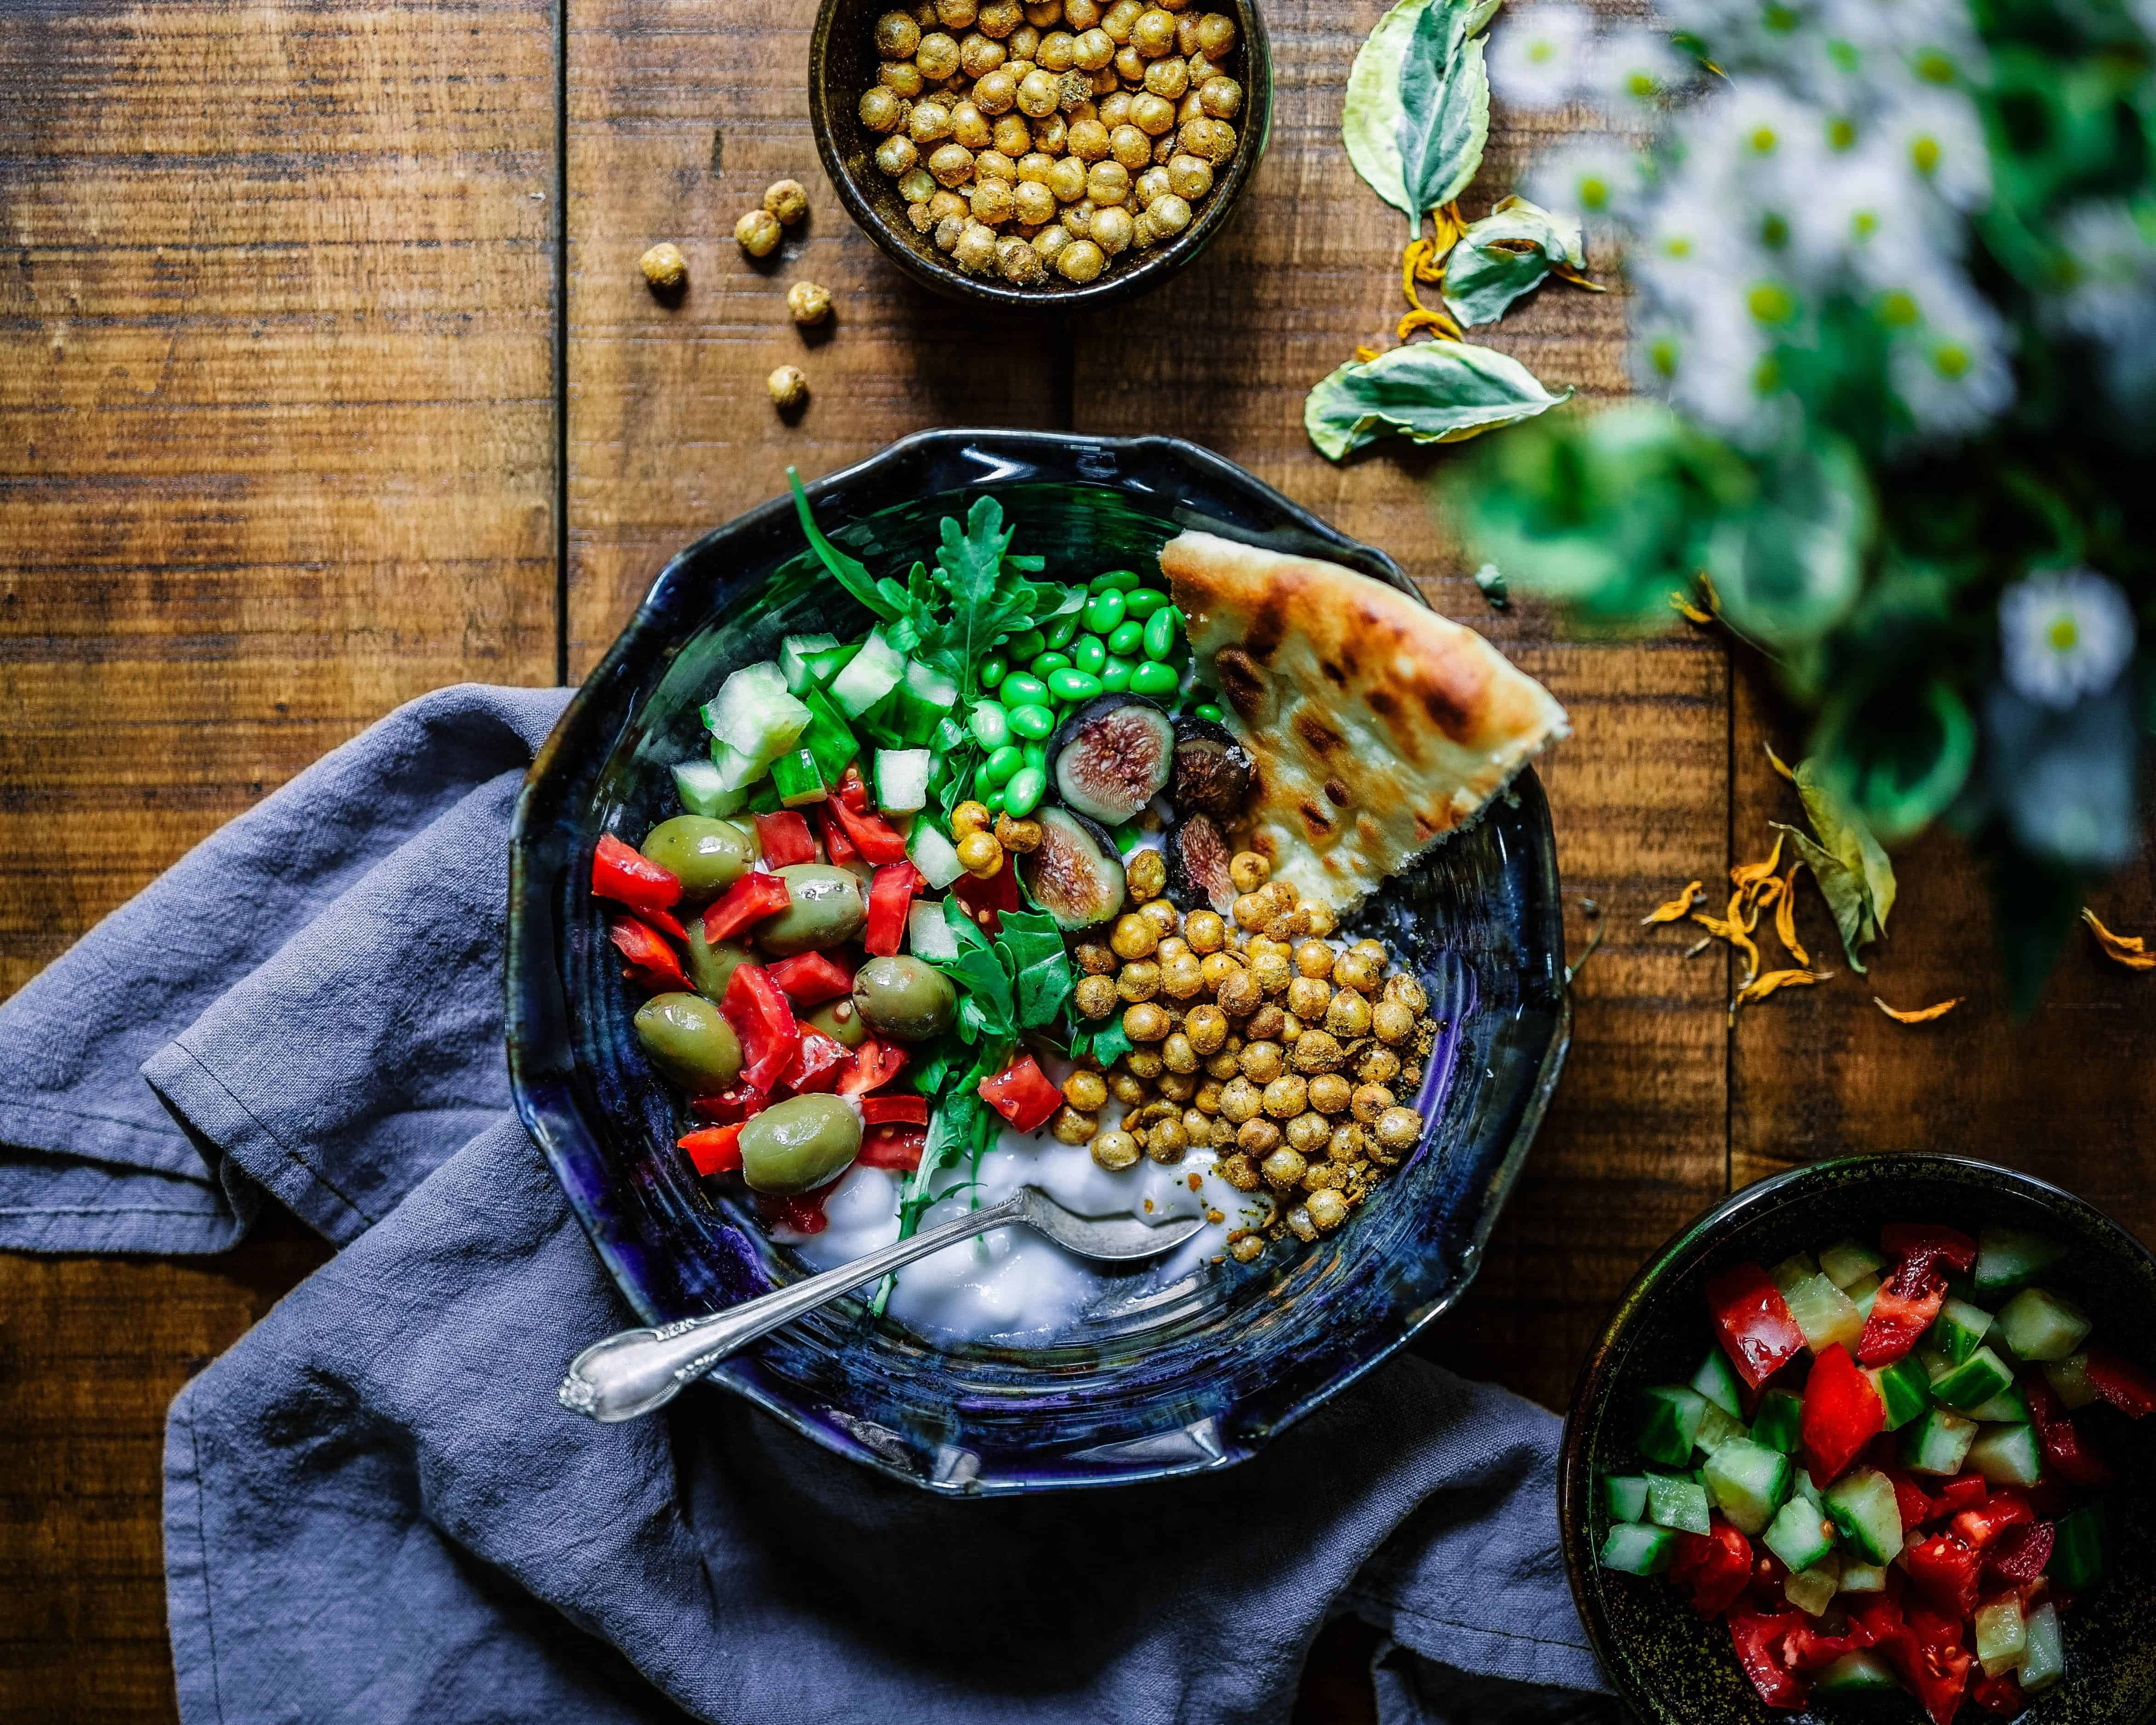 plantbased foods in a bowl